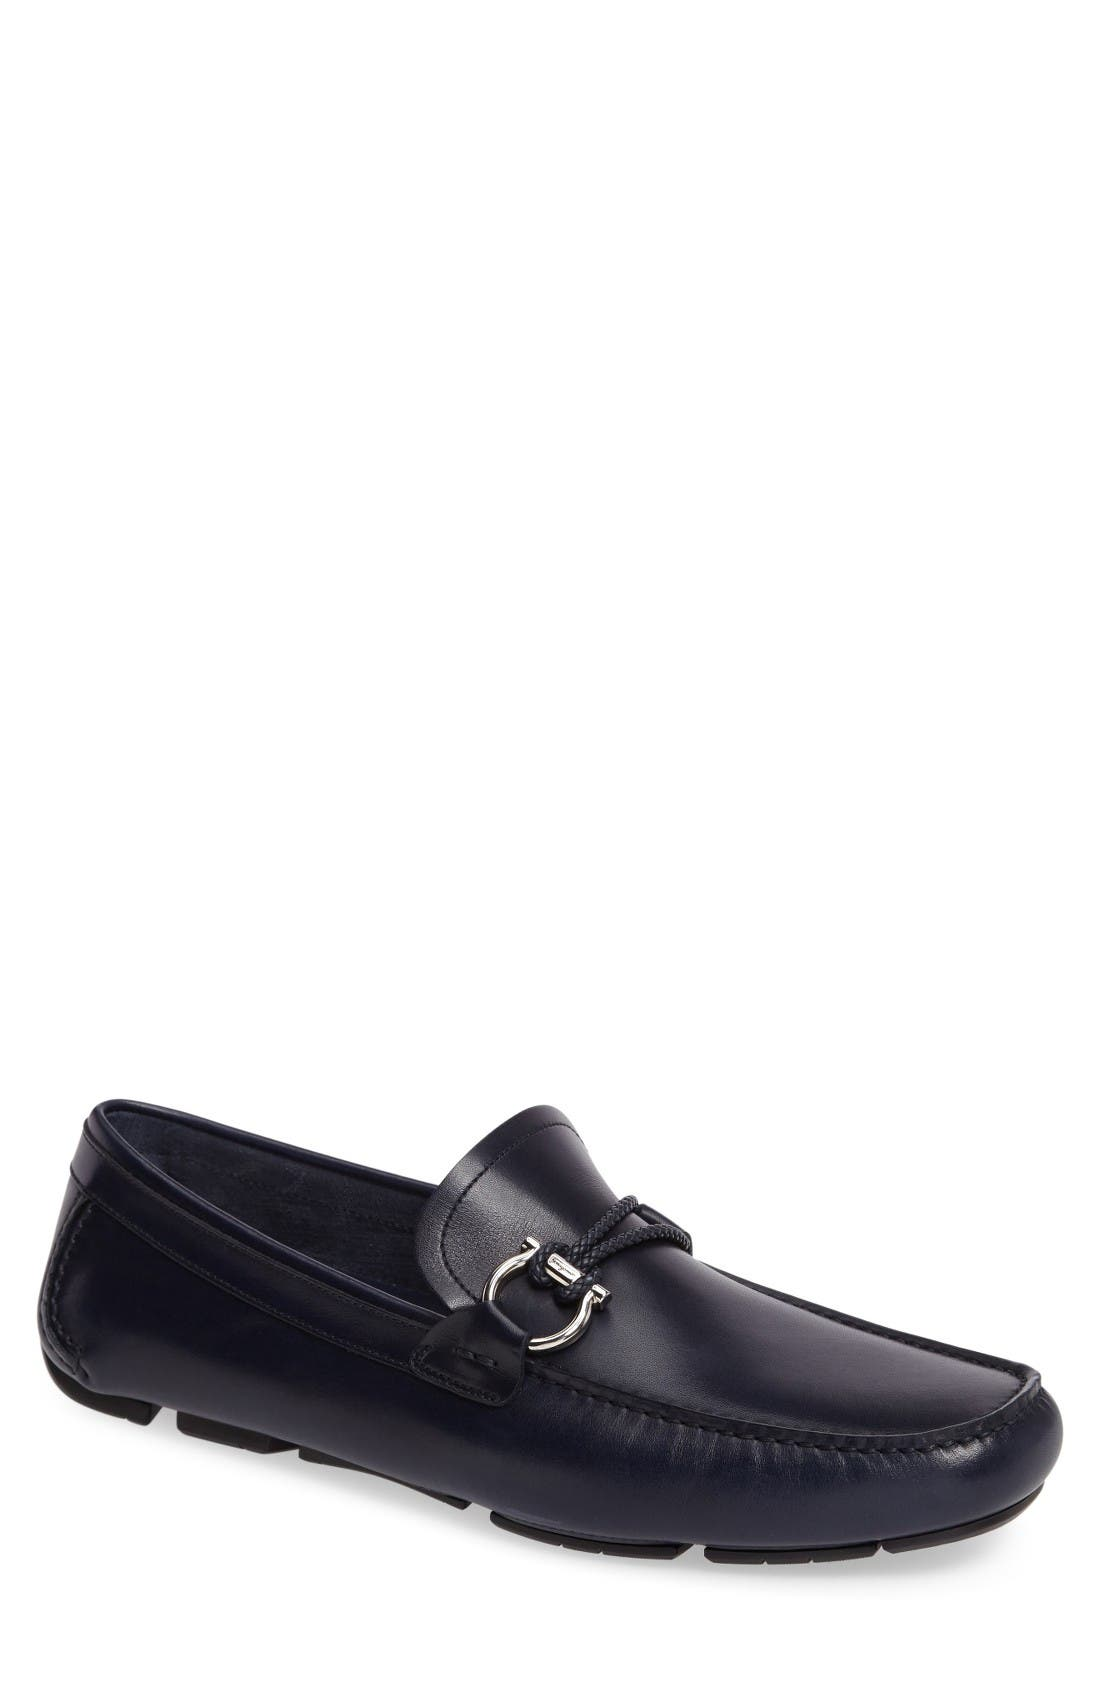 Alternate Image 1 Selected - Salvatore Ferragamo Front Braided Bit Driving Shoe (Men)